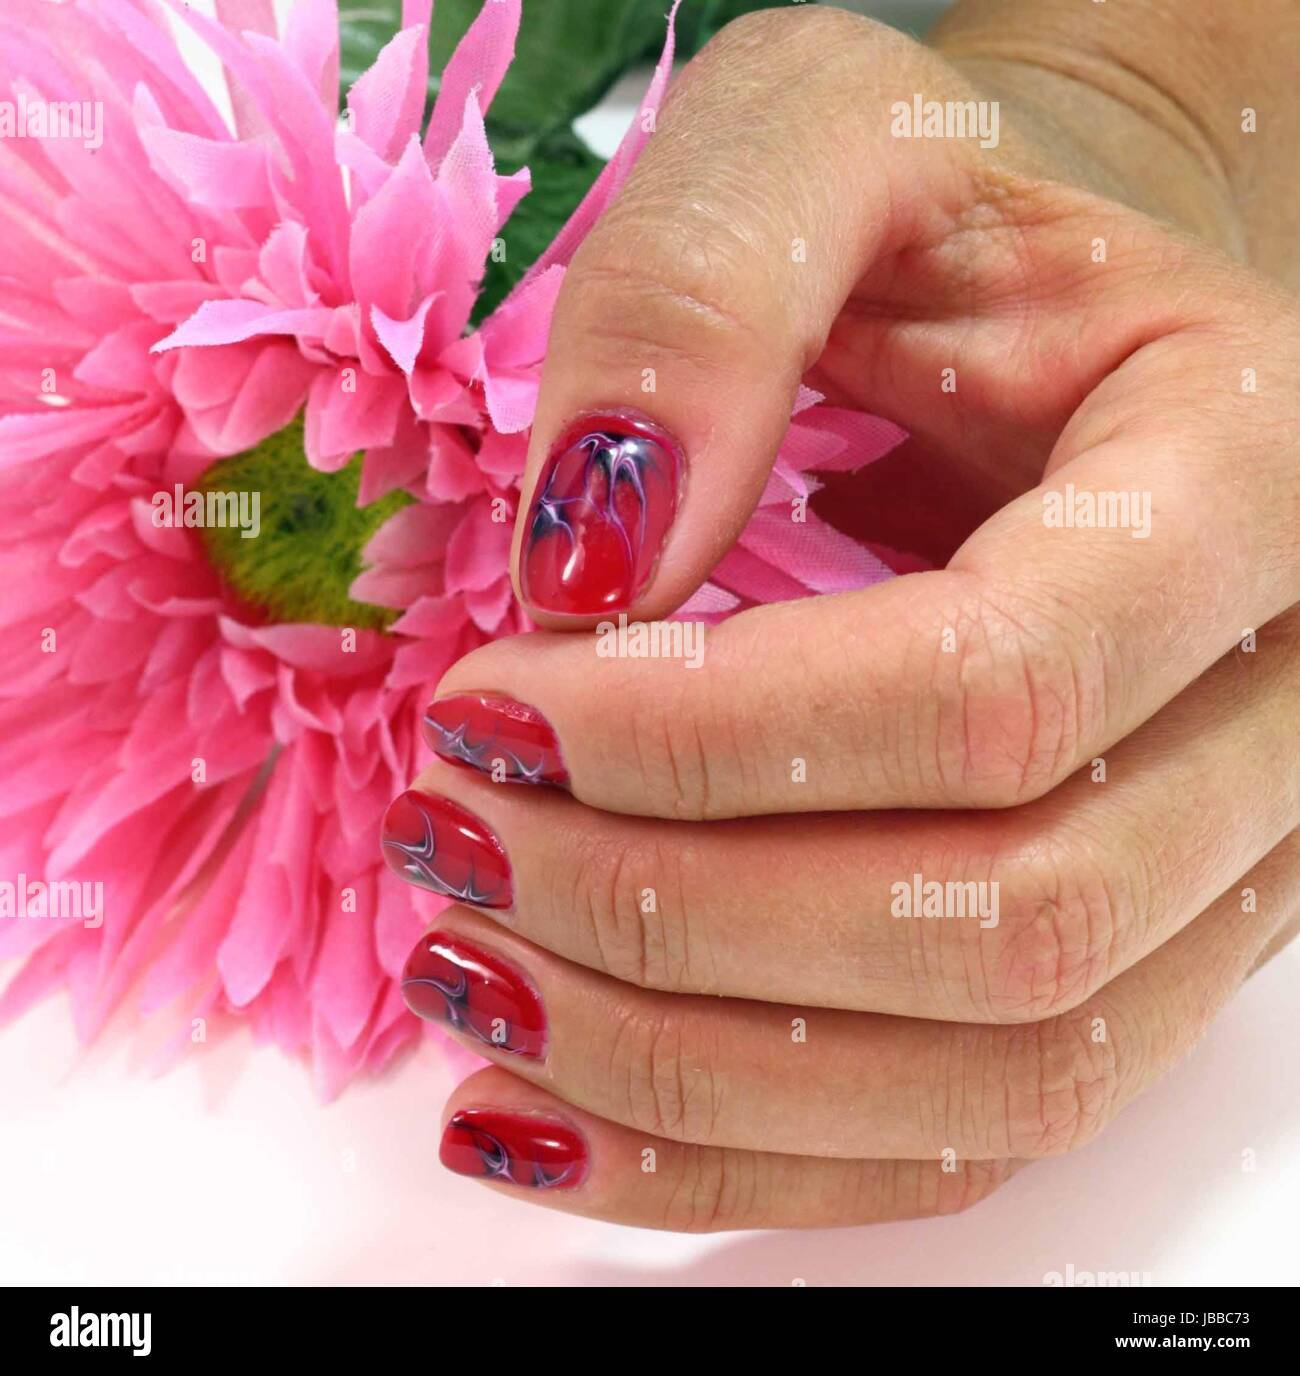 Female Hand Showing Red Nails Stockfotos & Female Hand Showing Red ...